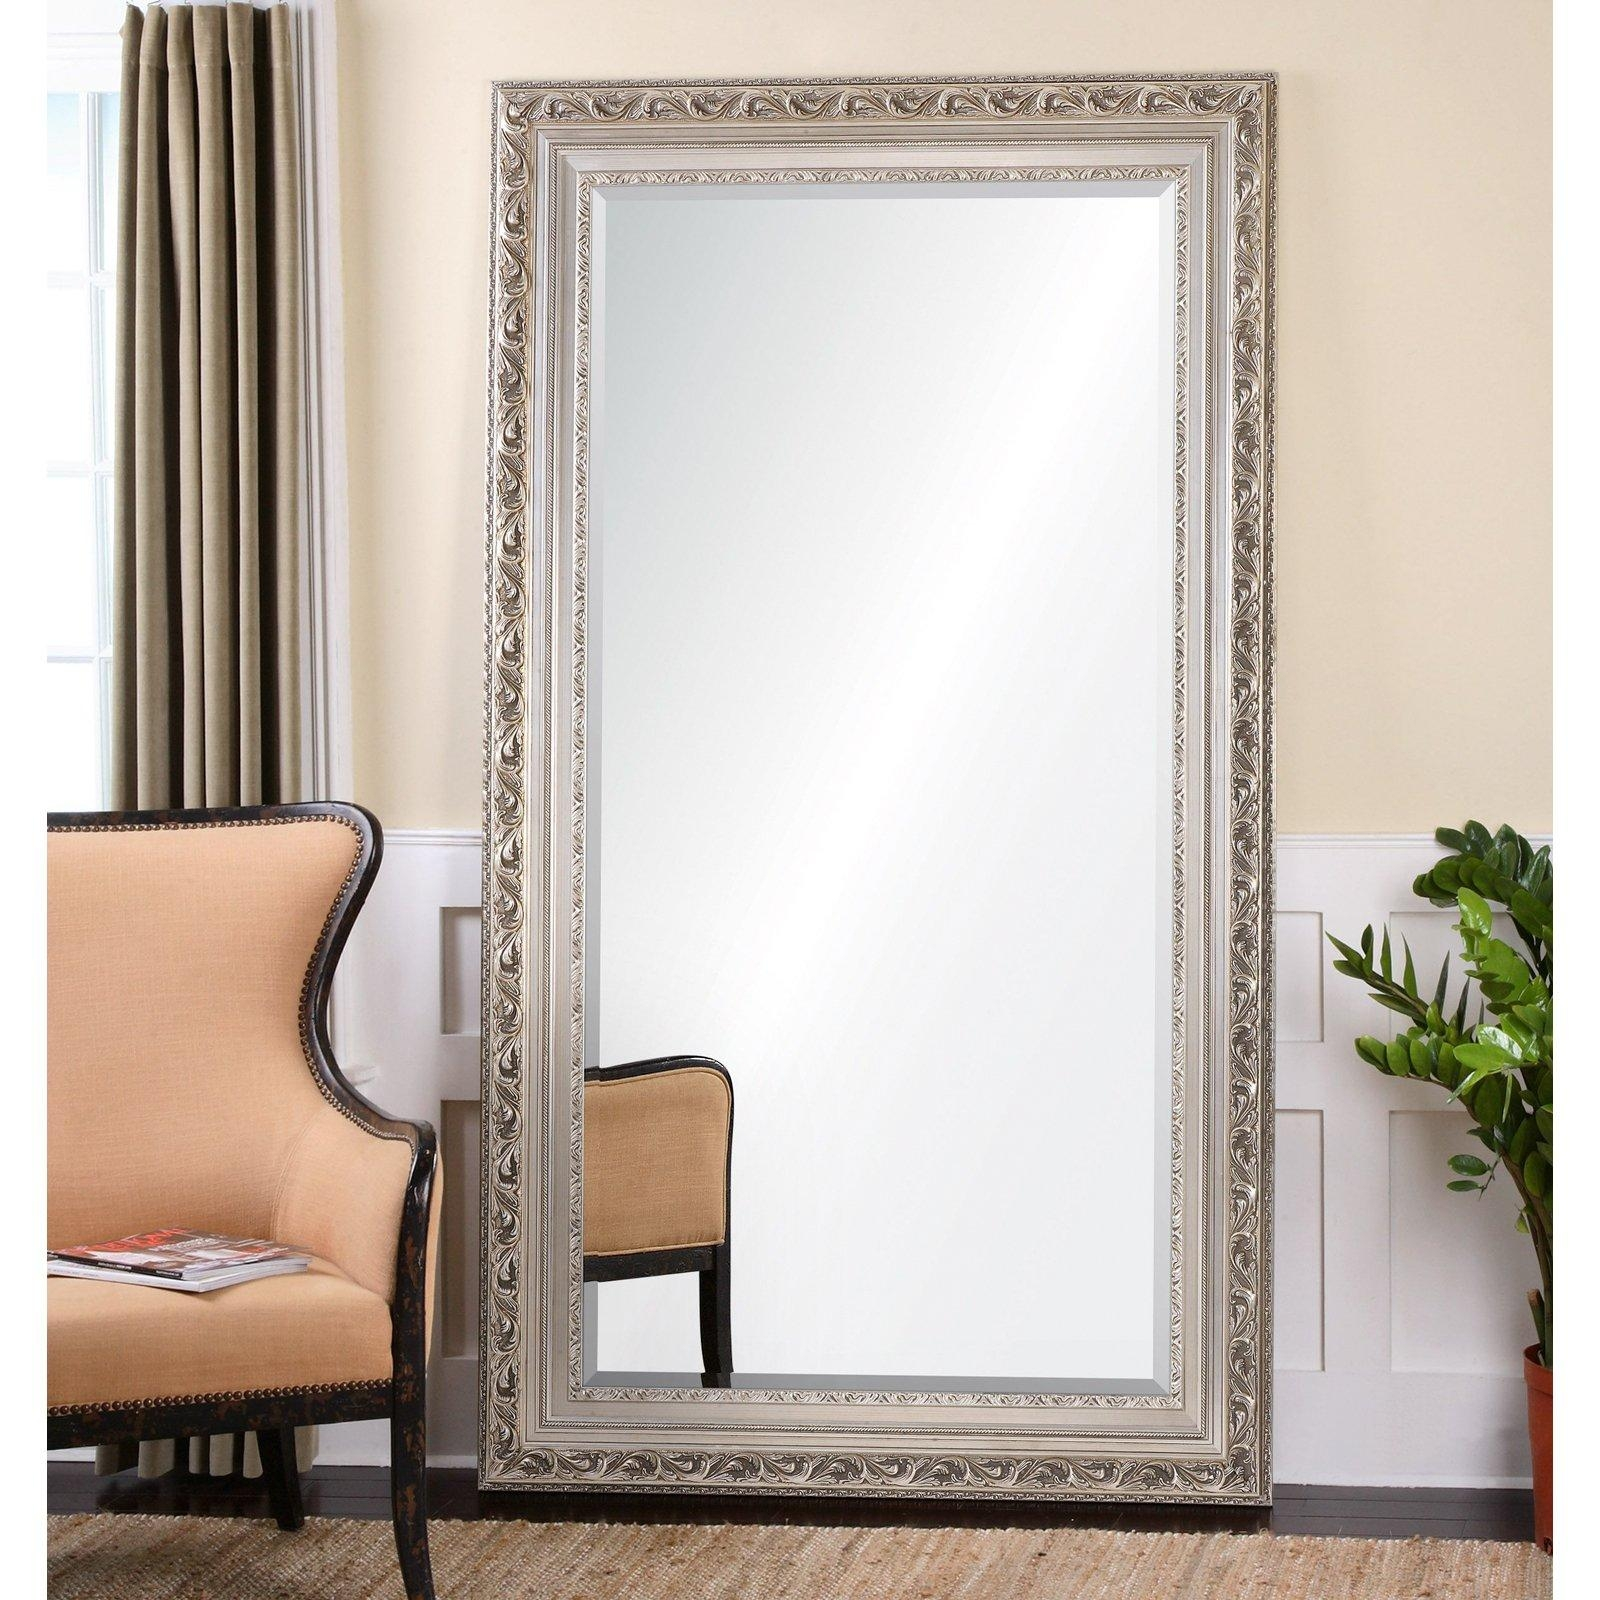 Large Wooden Mirrors For Sale – Harpsounds (Image 12 of 20)